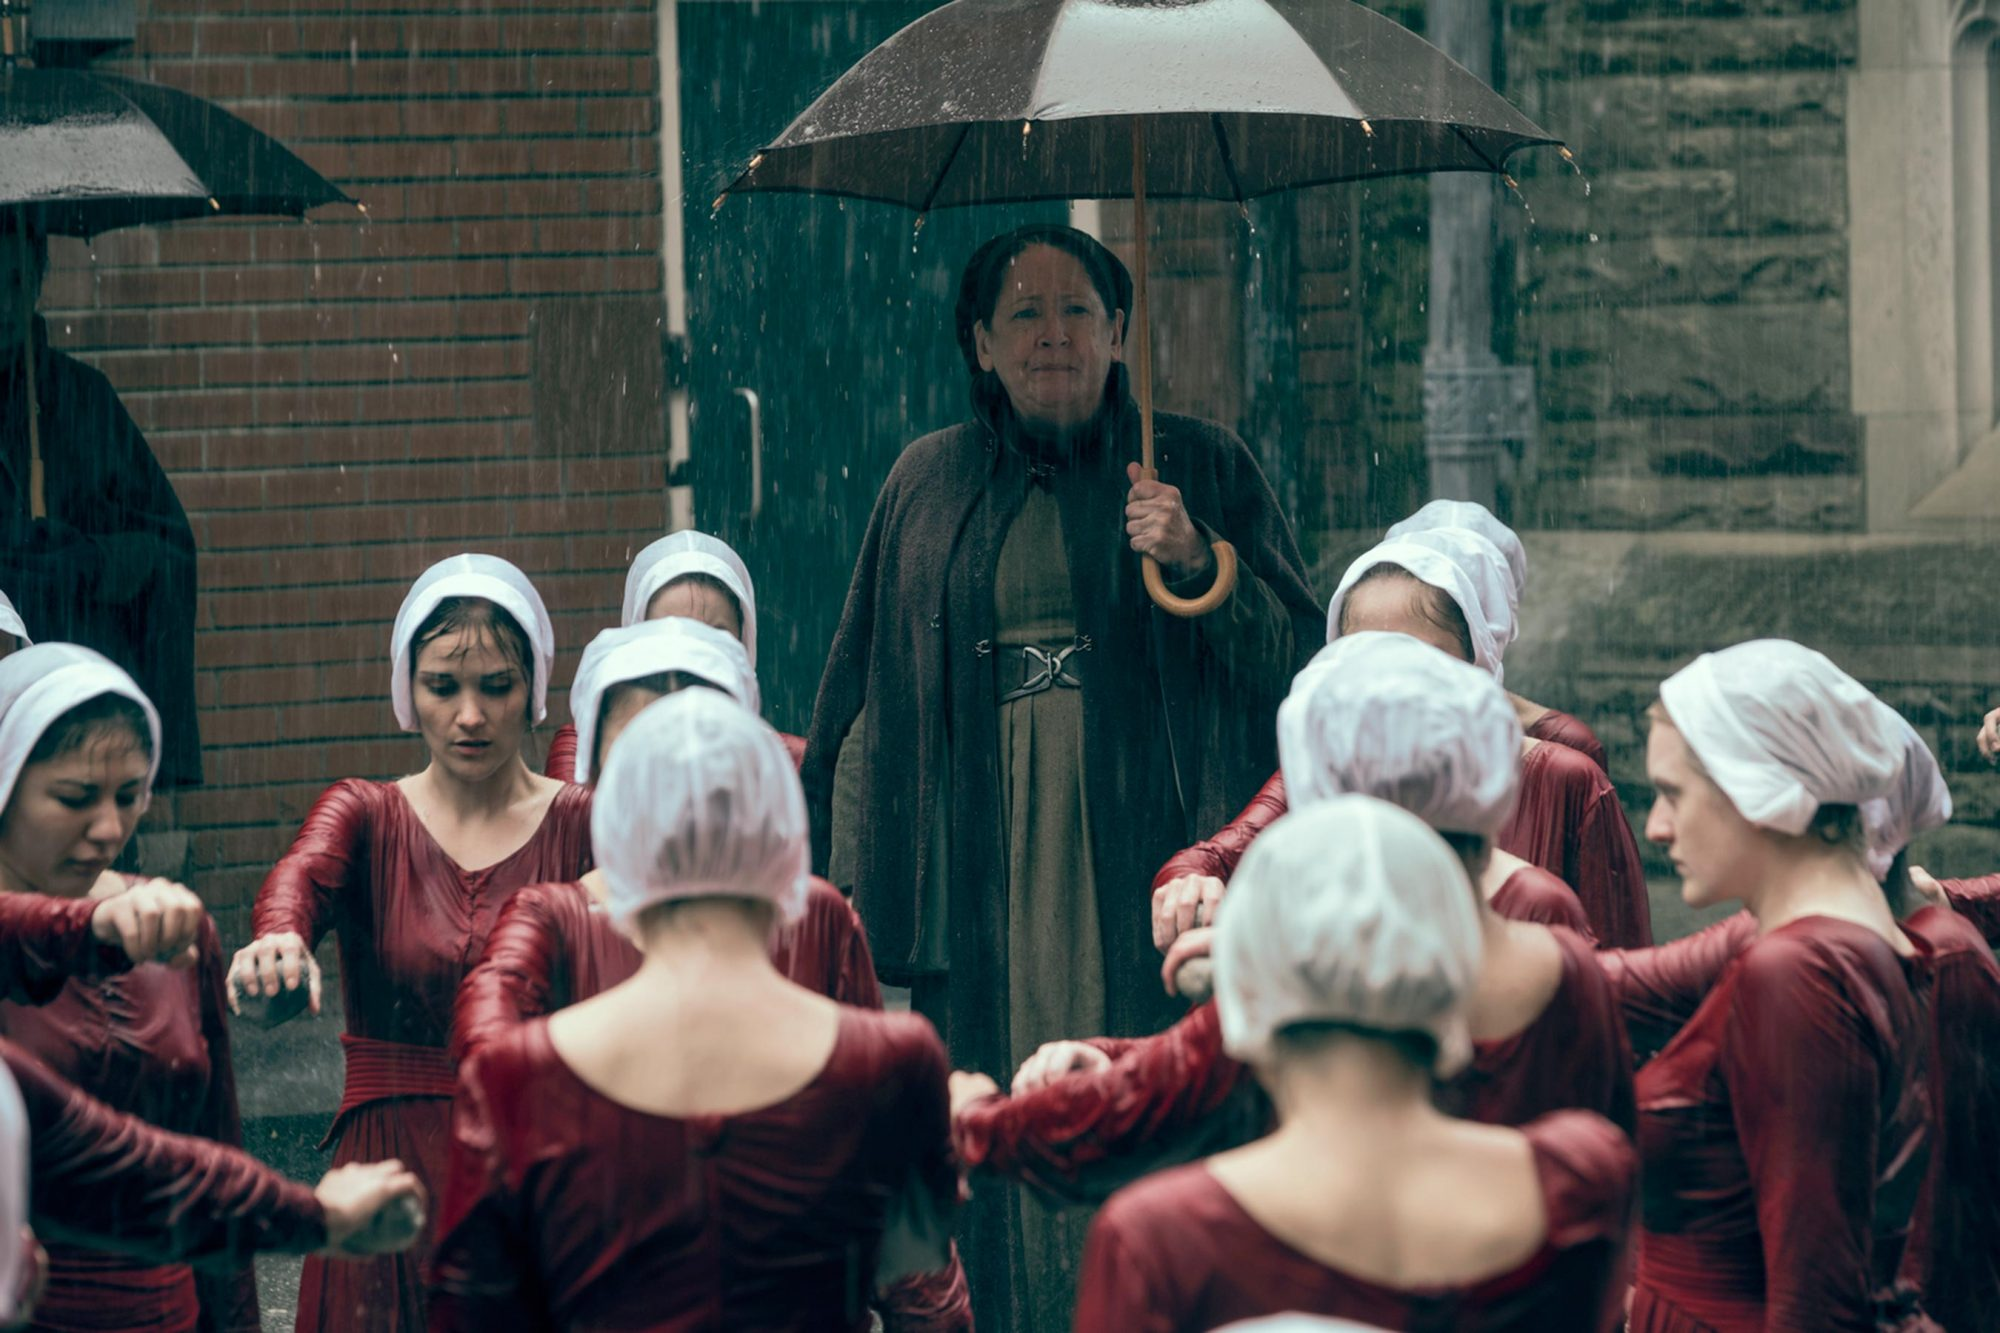 Kristen's No. 5: The Handmaid's Tale